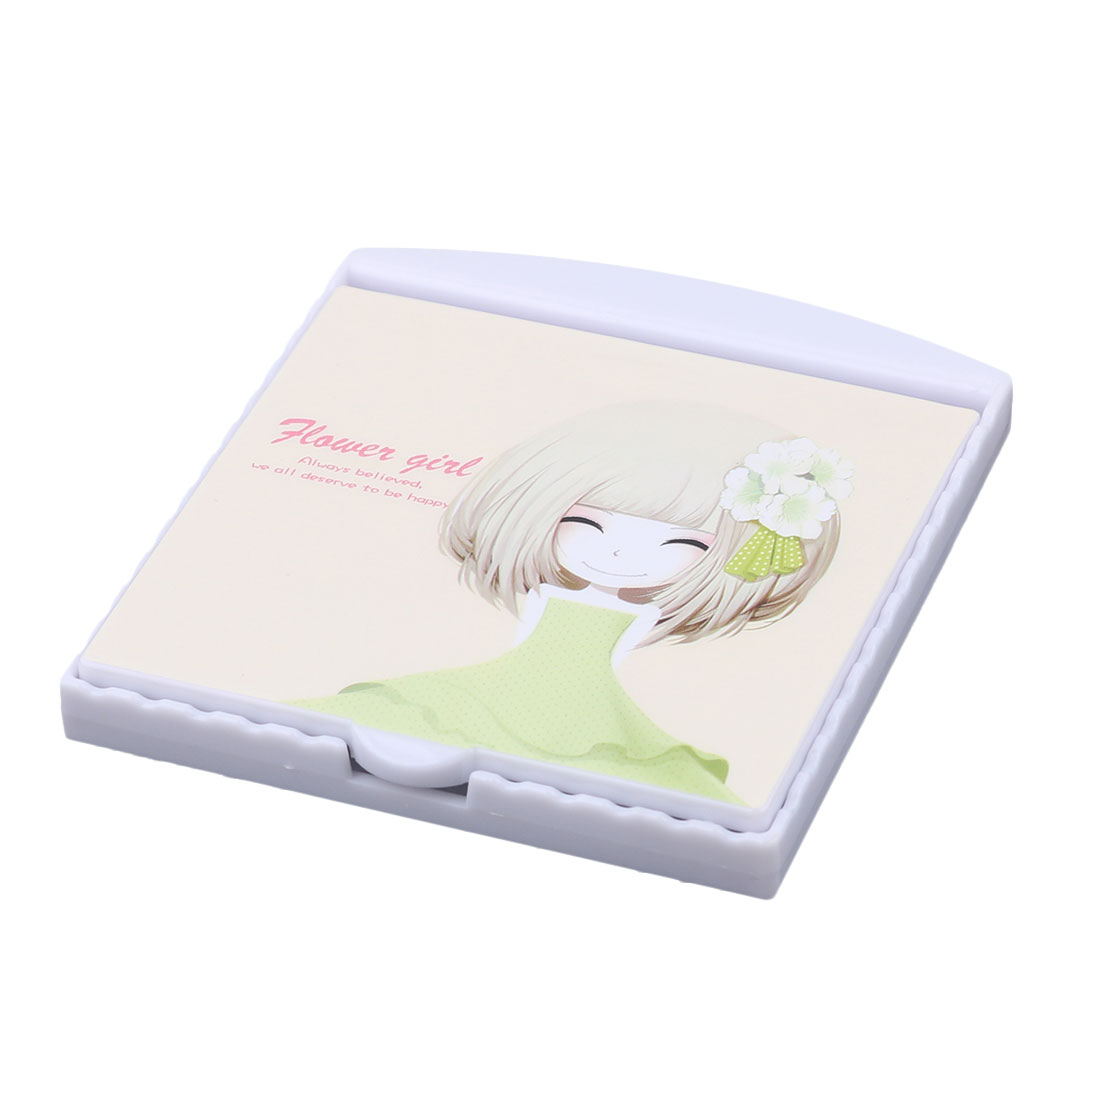 Home Woman Plastic Girl Pattern Folding Mini Makeup Cosmetic Mirror Comb White 2 in 1